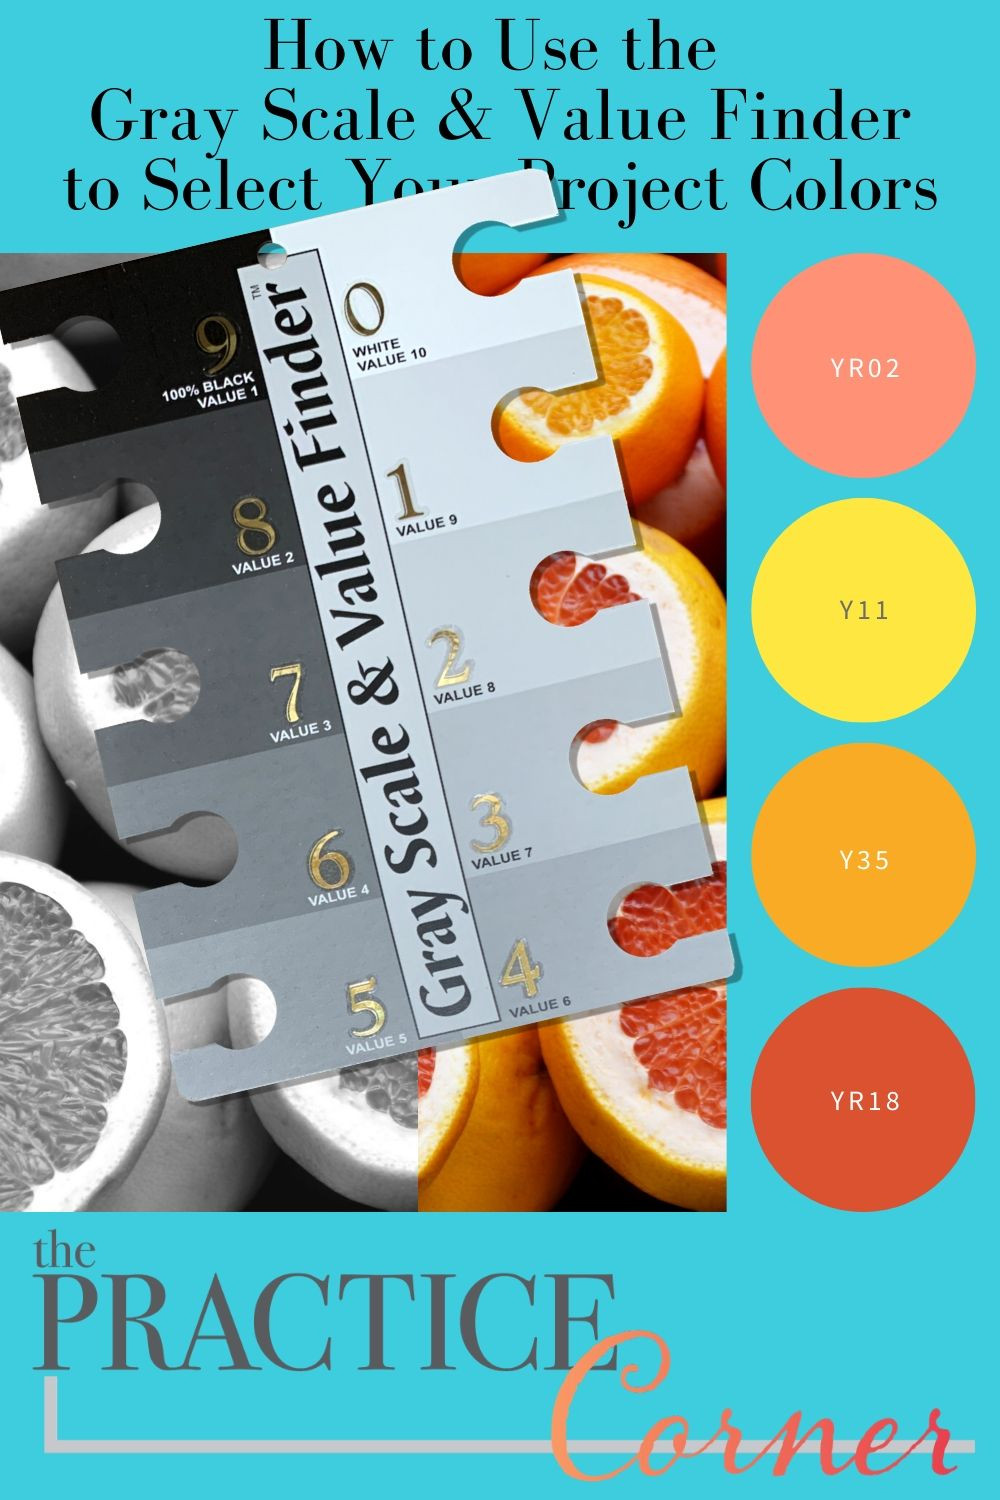 How to use the Gray Scale & Value Finder to select Copic markers, colored pencils or watercolors for your realistic art projects.  #coloredpencil #coloredpencilpractice #copicmarker #copicmarkerpractice  #copiccoloring #coloredpencilcoloring